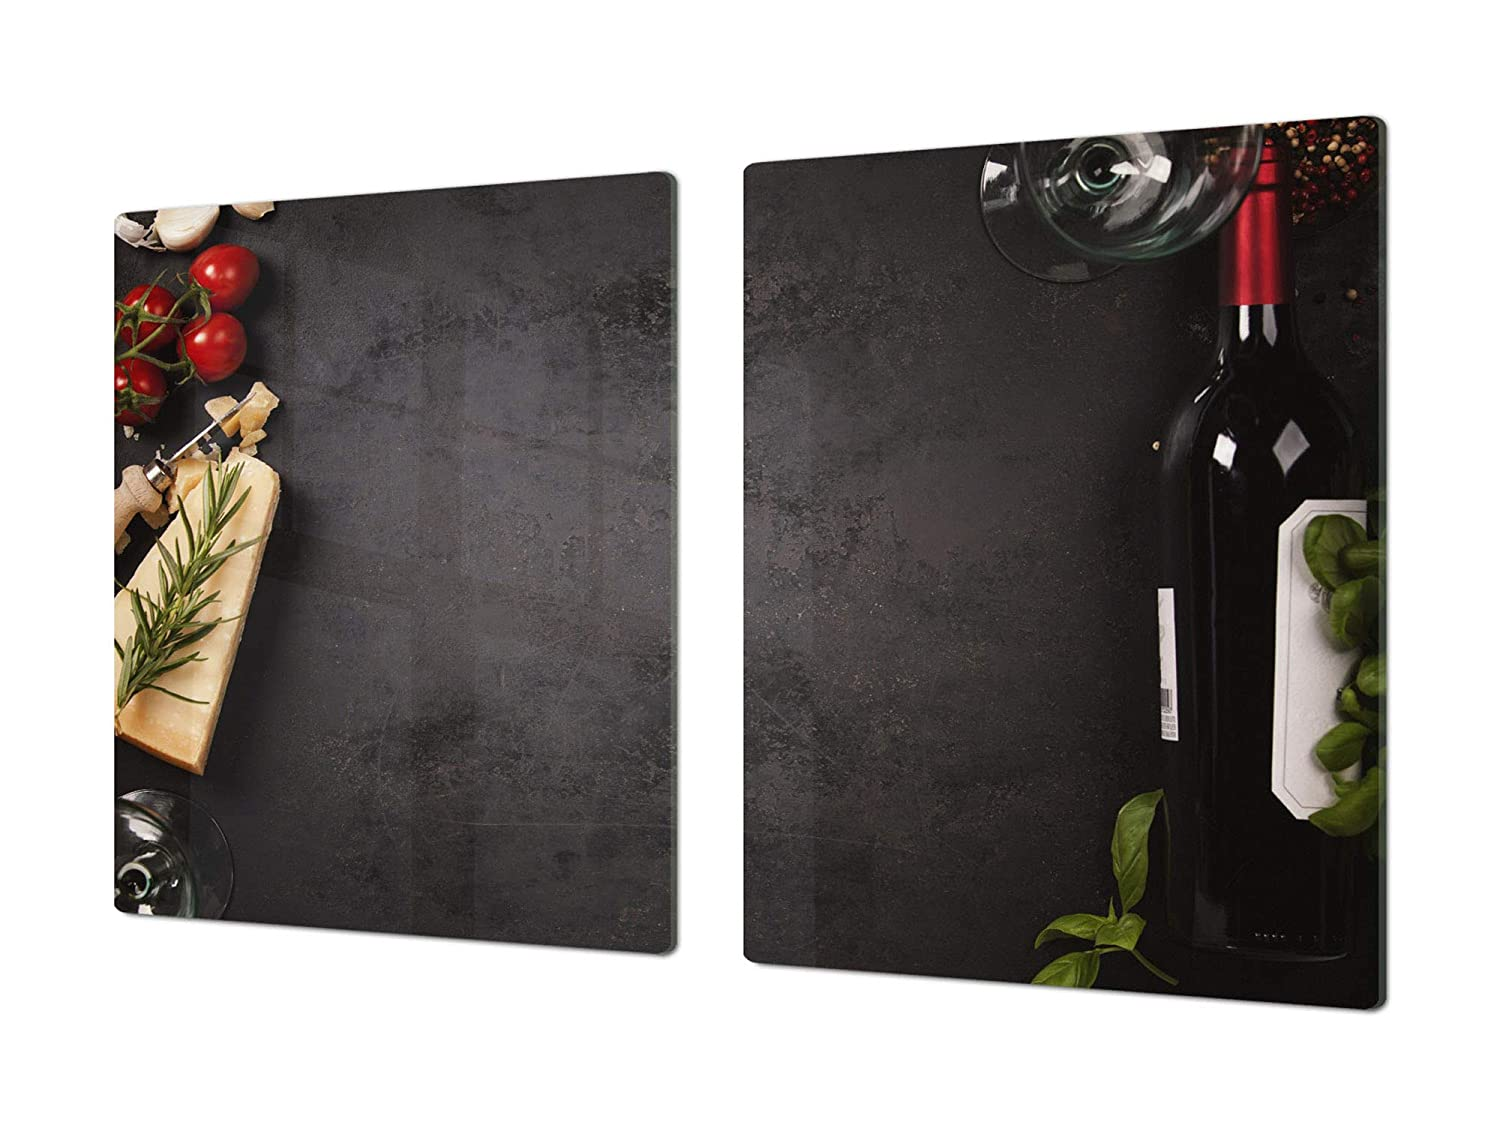 French wine 2 2x40x52 Big Kitchen Board & Induction Cooktop Cover – Glass Pastry Board – Heat and Bacteria Resistant;Single  80 x 52 cm (31,5  x 20,47 ); Double  40 x 52 cm (15,75  x 20,47 ); Wine Series DD04